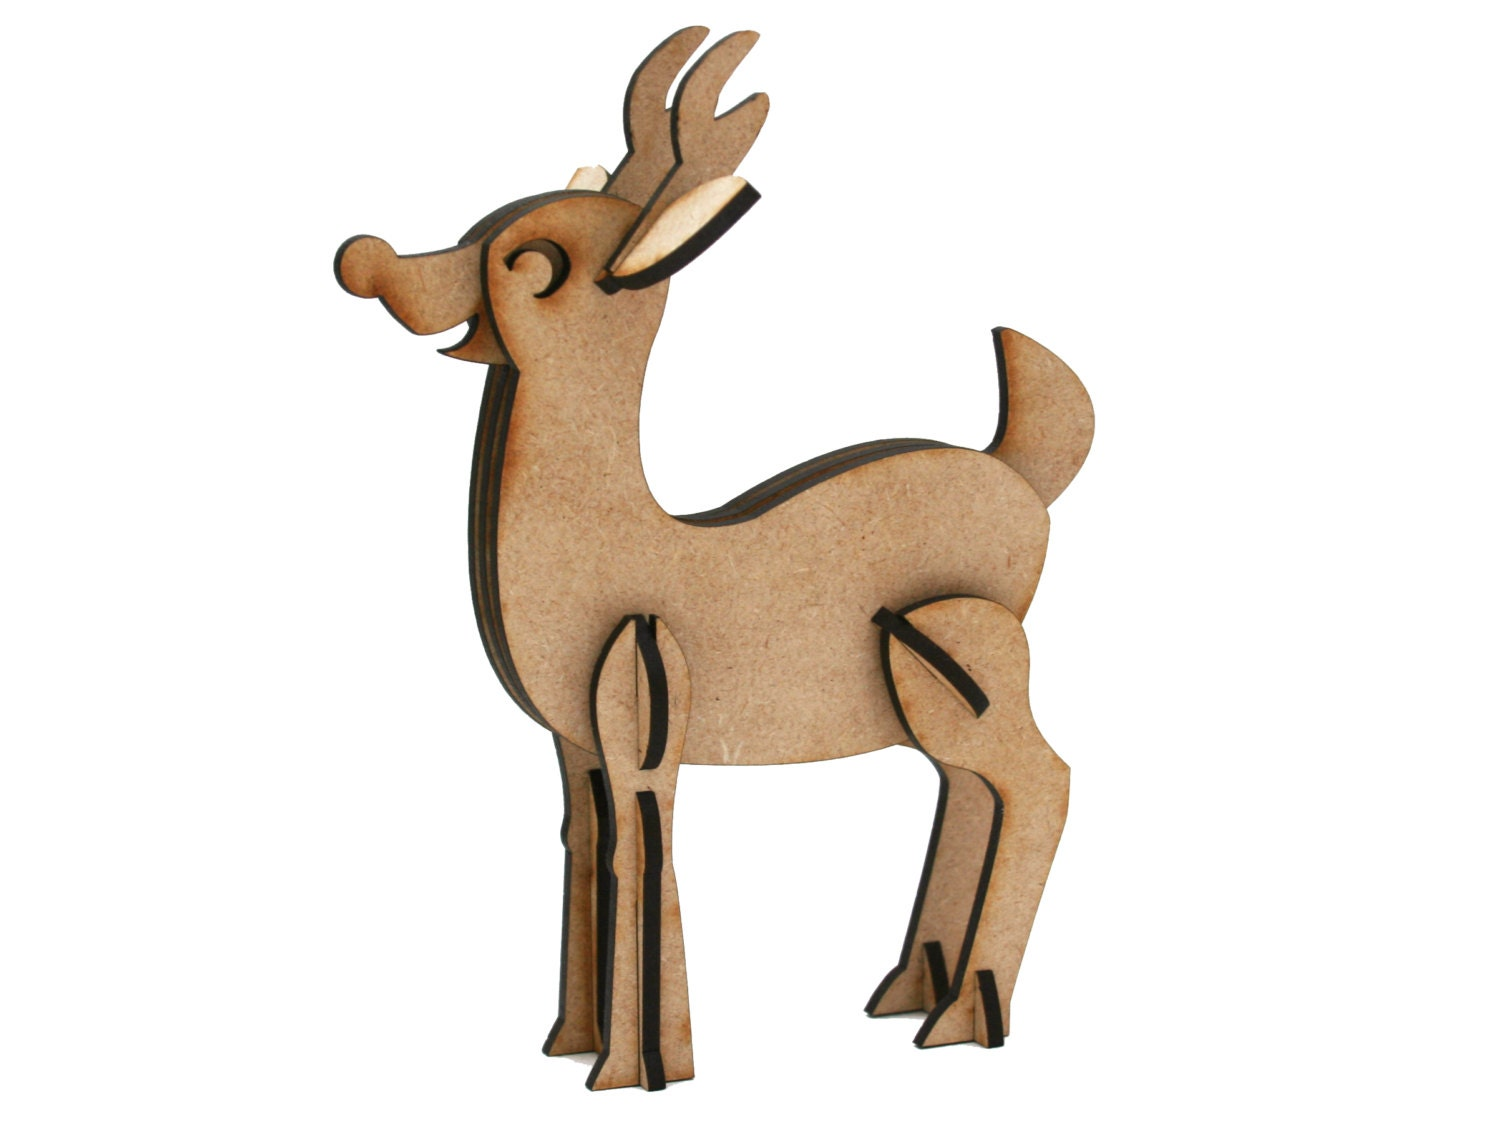 Laser Cut Wood Reindeer Puzzle Toy Christmas Decoration Great For The Holidays